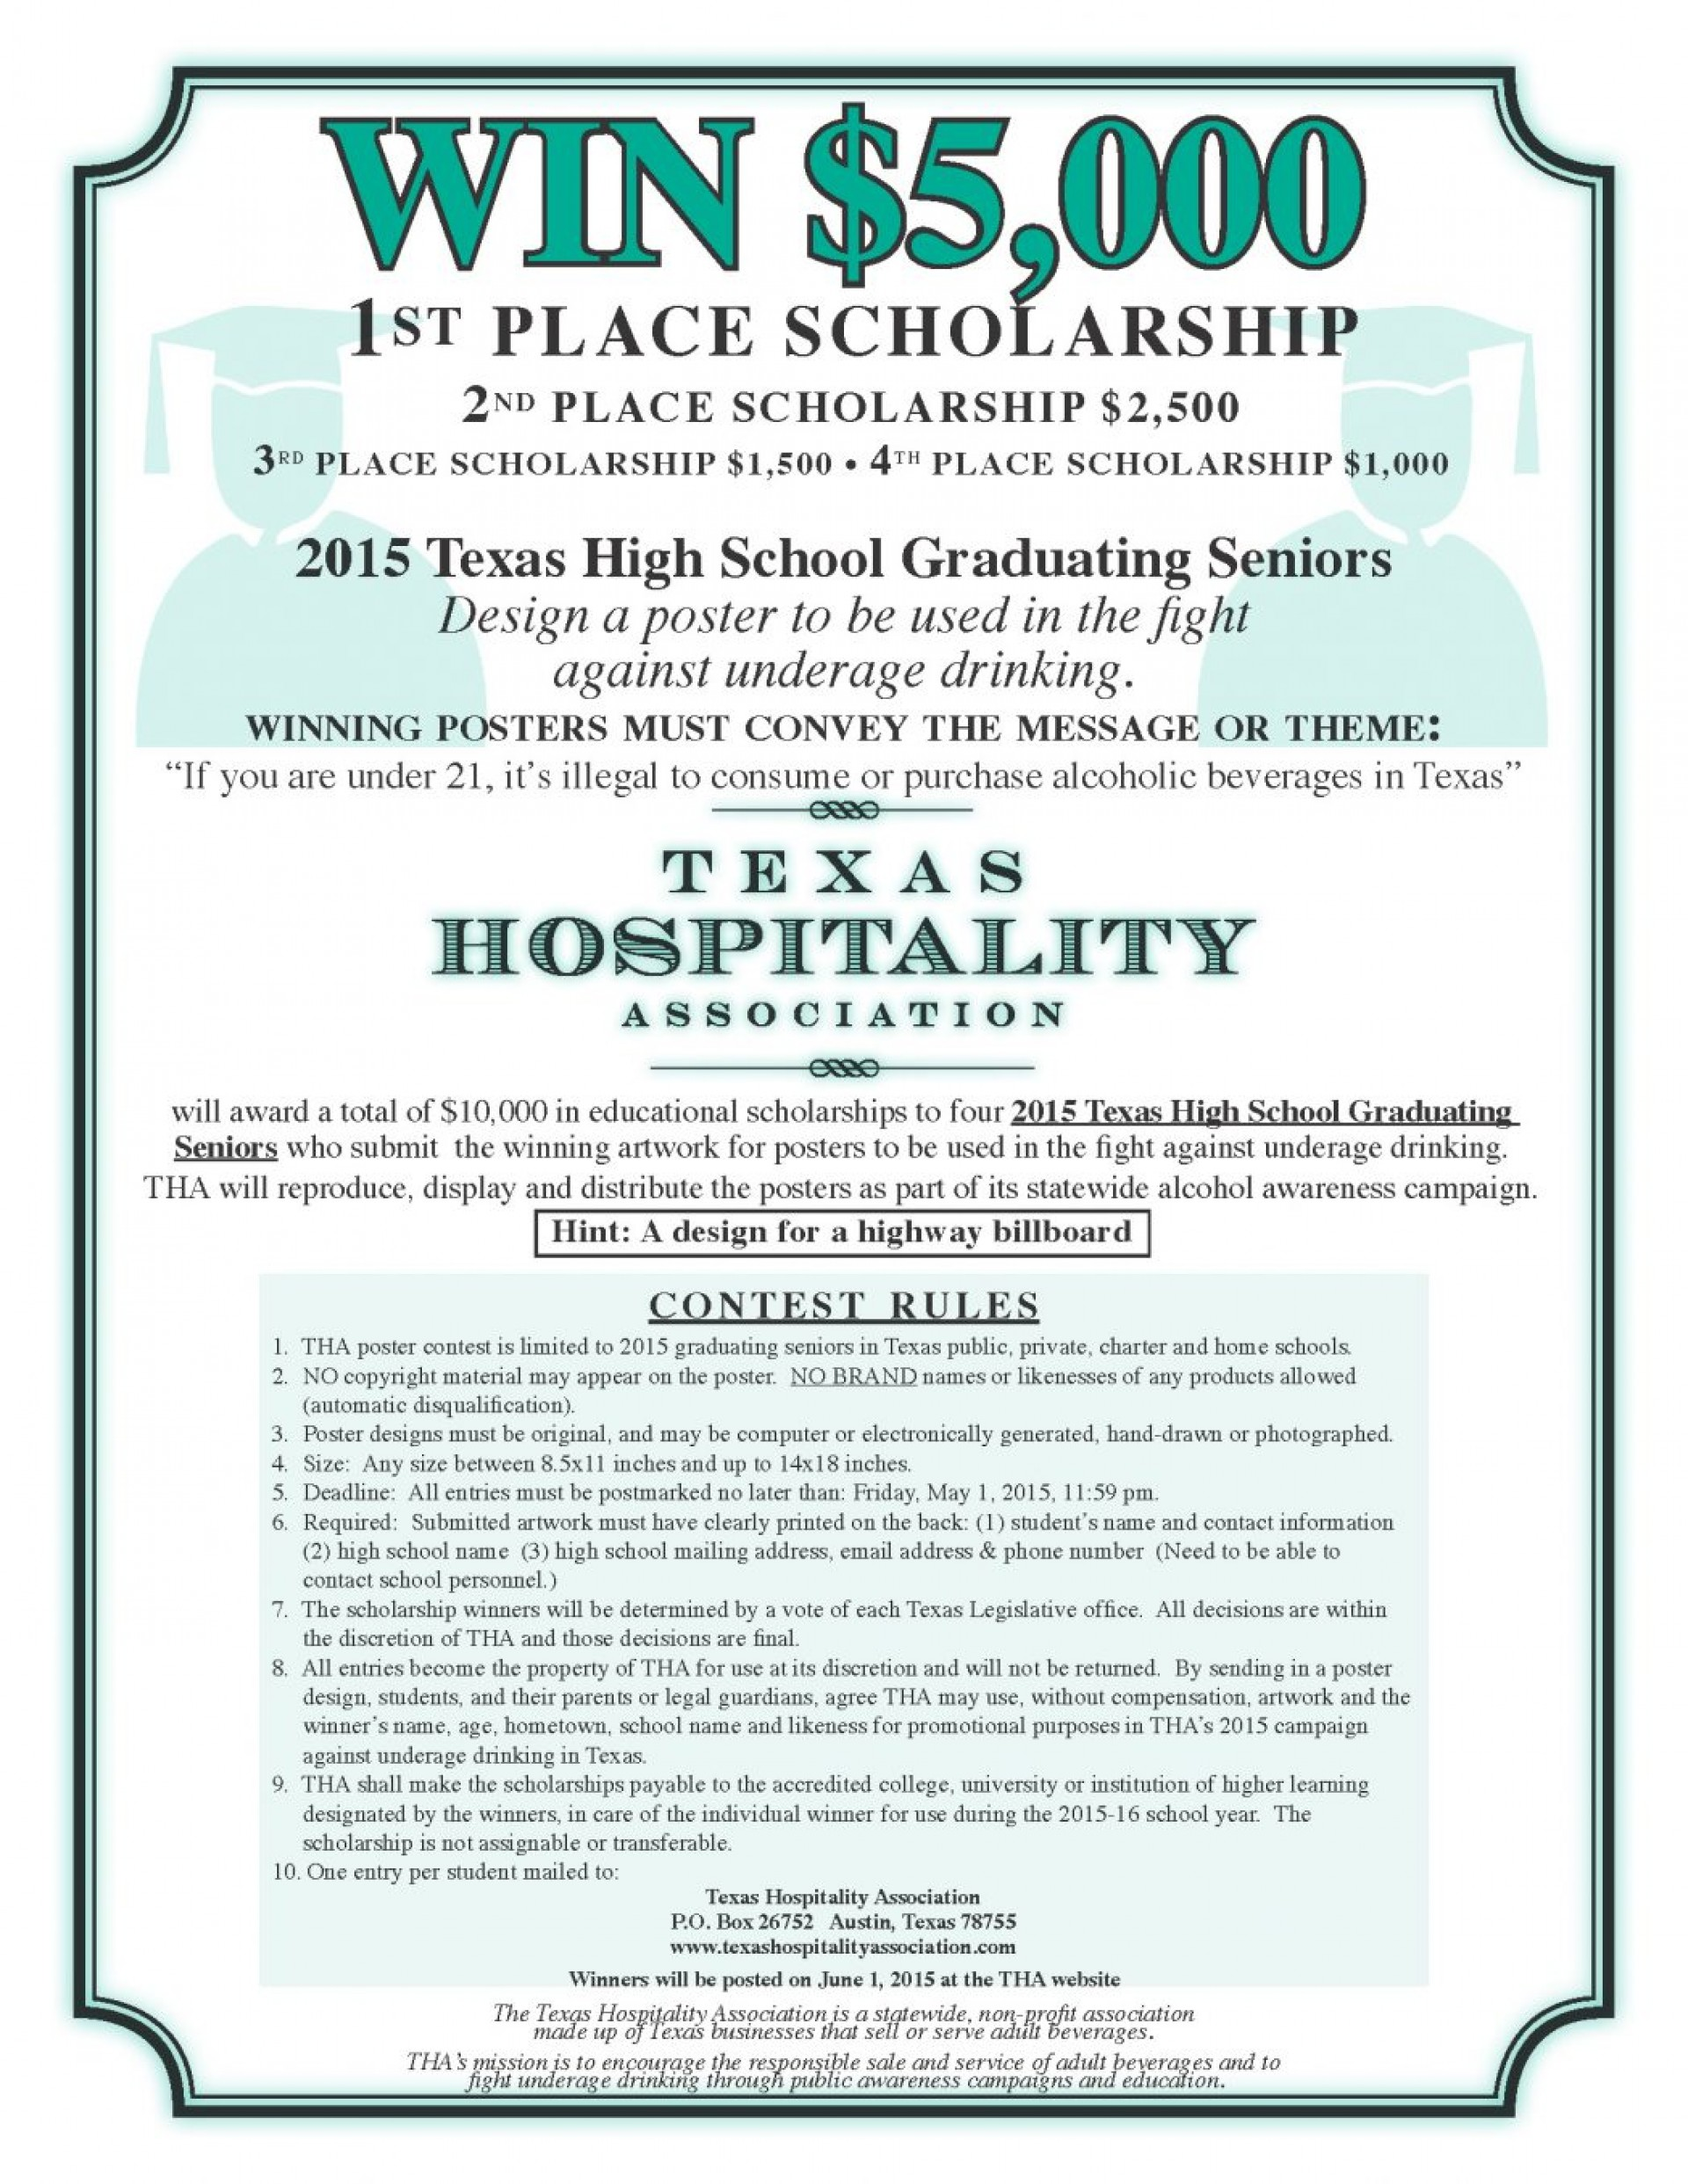 009 Easy Scholarships For High School Seniors Without Essays Research Students No Essay Scholarshi 1048x1356 Stunning In Texas With Required Scholarship College Examples 1920